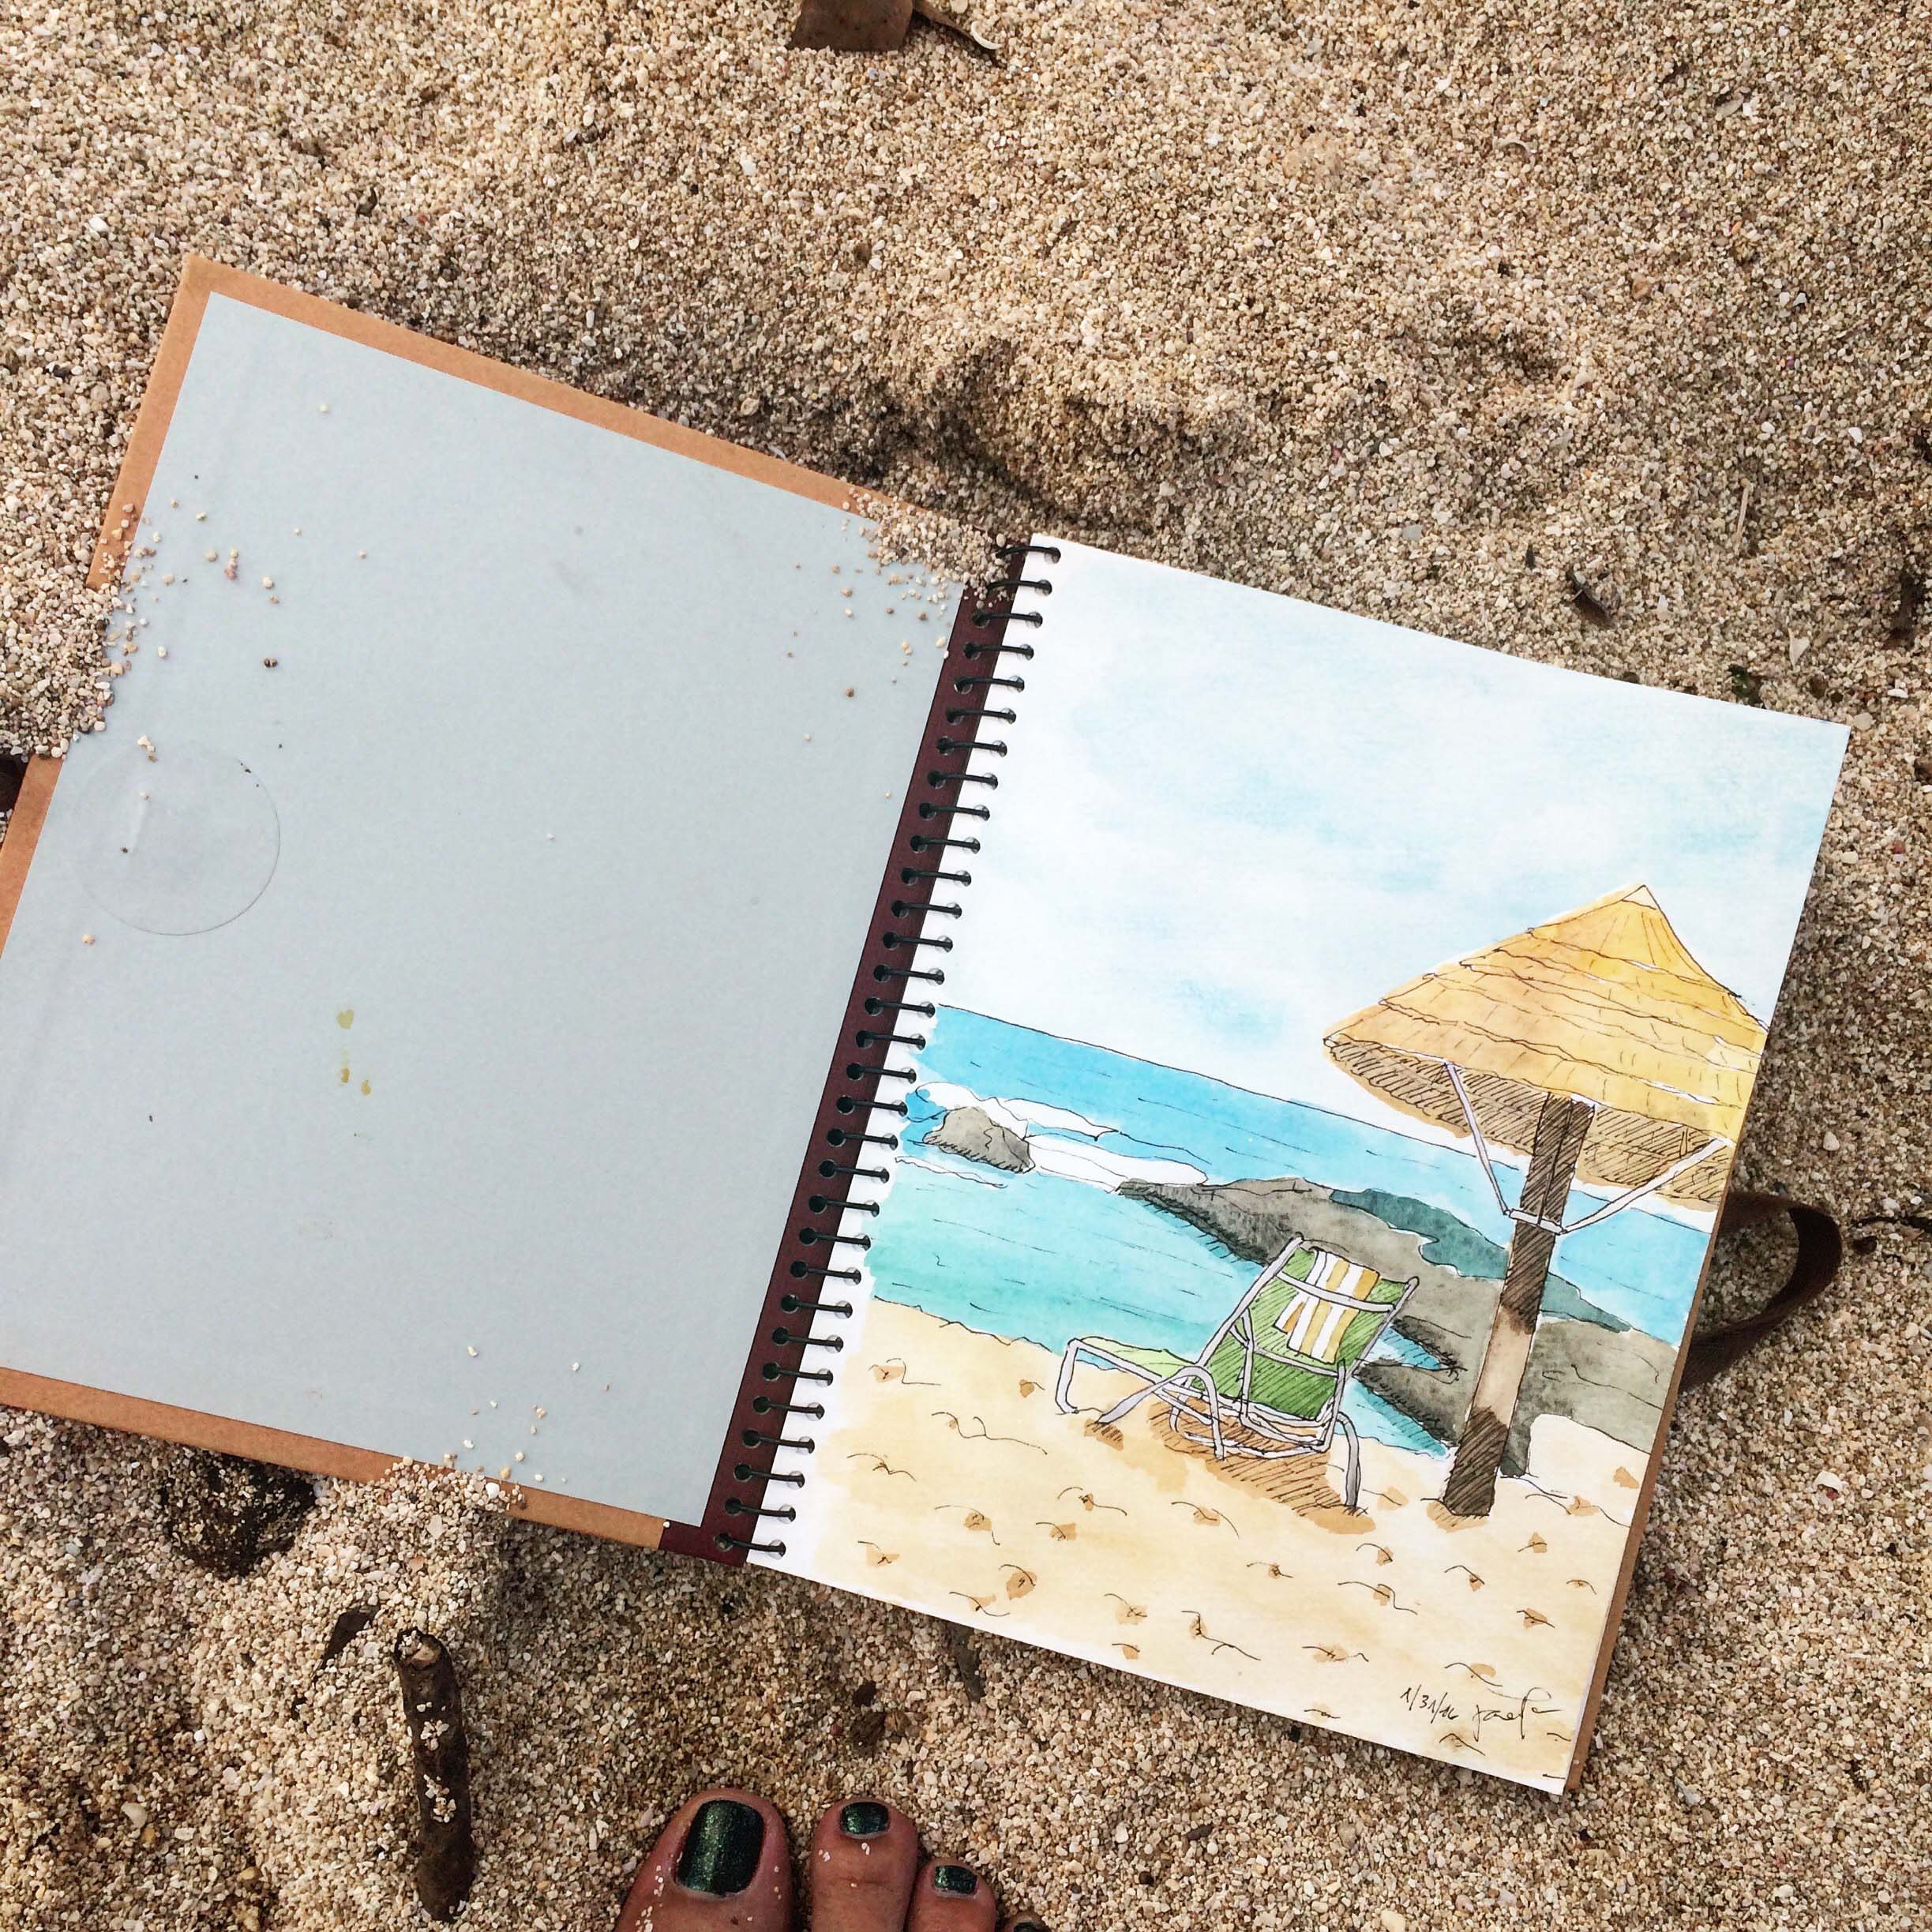 Sketch of beach at Turtle Bay, dated 31 January 2016.